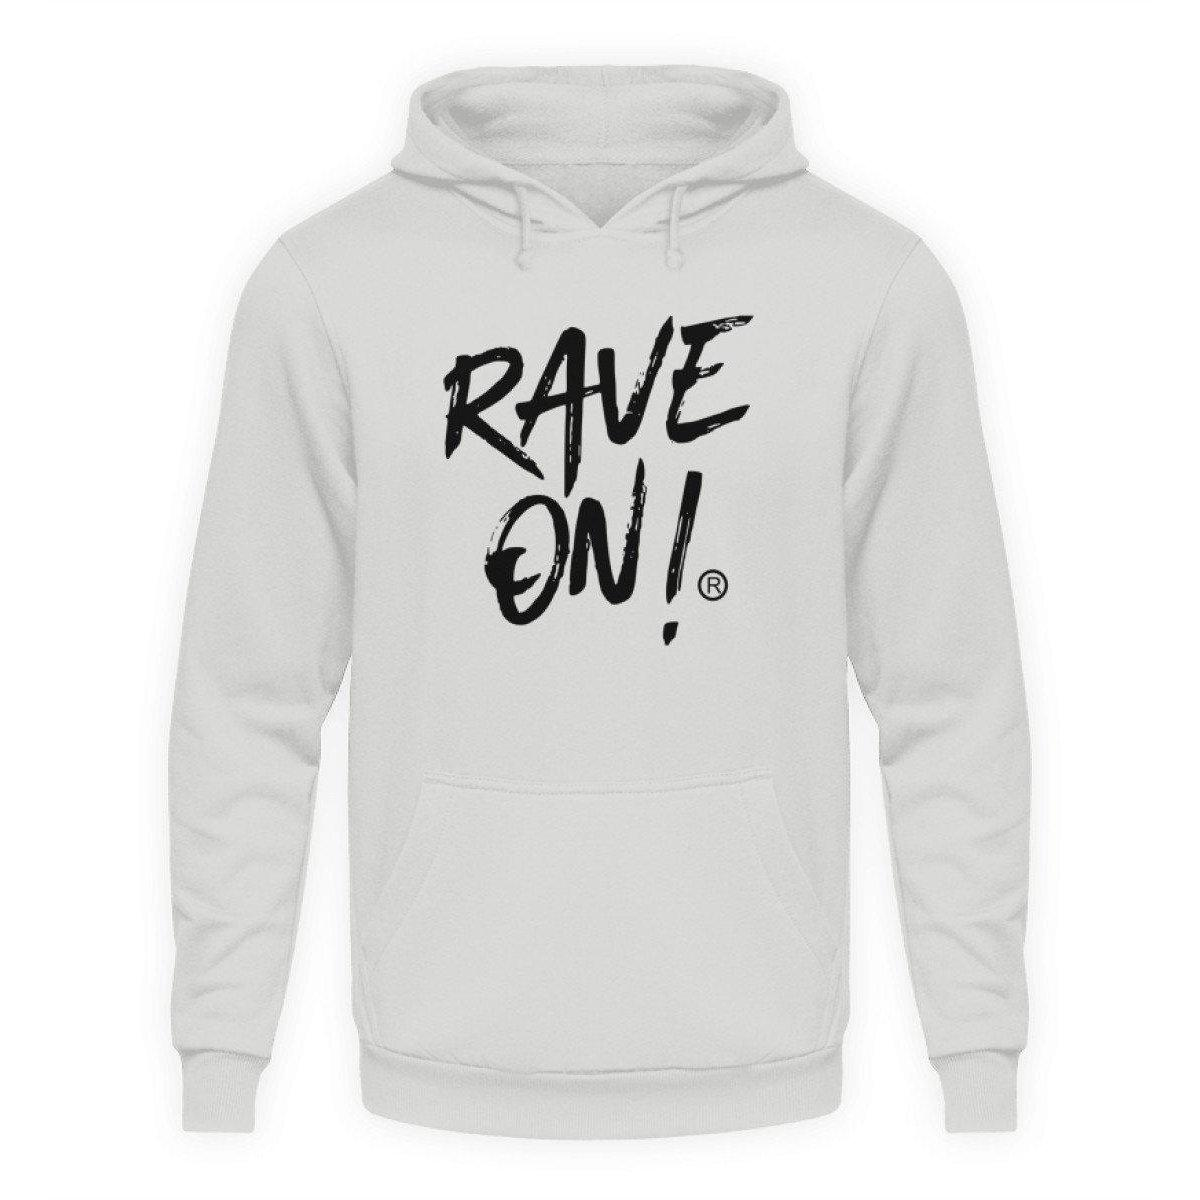 Rave On!® Light Collection - Unisex Hooded Sweater Hoodie Unisex Hoodie Sport Gray / L - Rave On!® the club & techno scene shop for cool young fashion streetwear style & fashion outfits + sexy festival 420 stuff